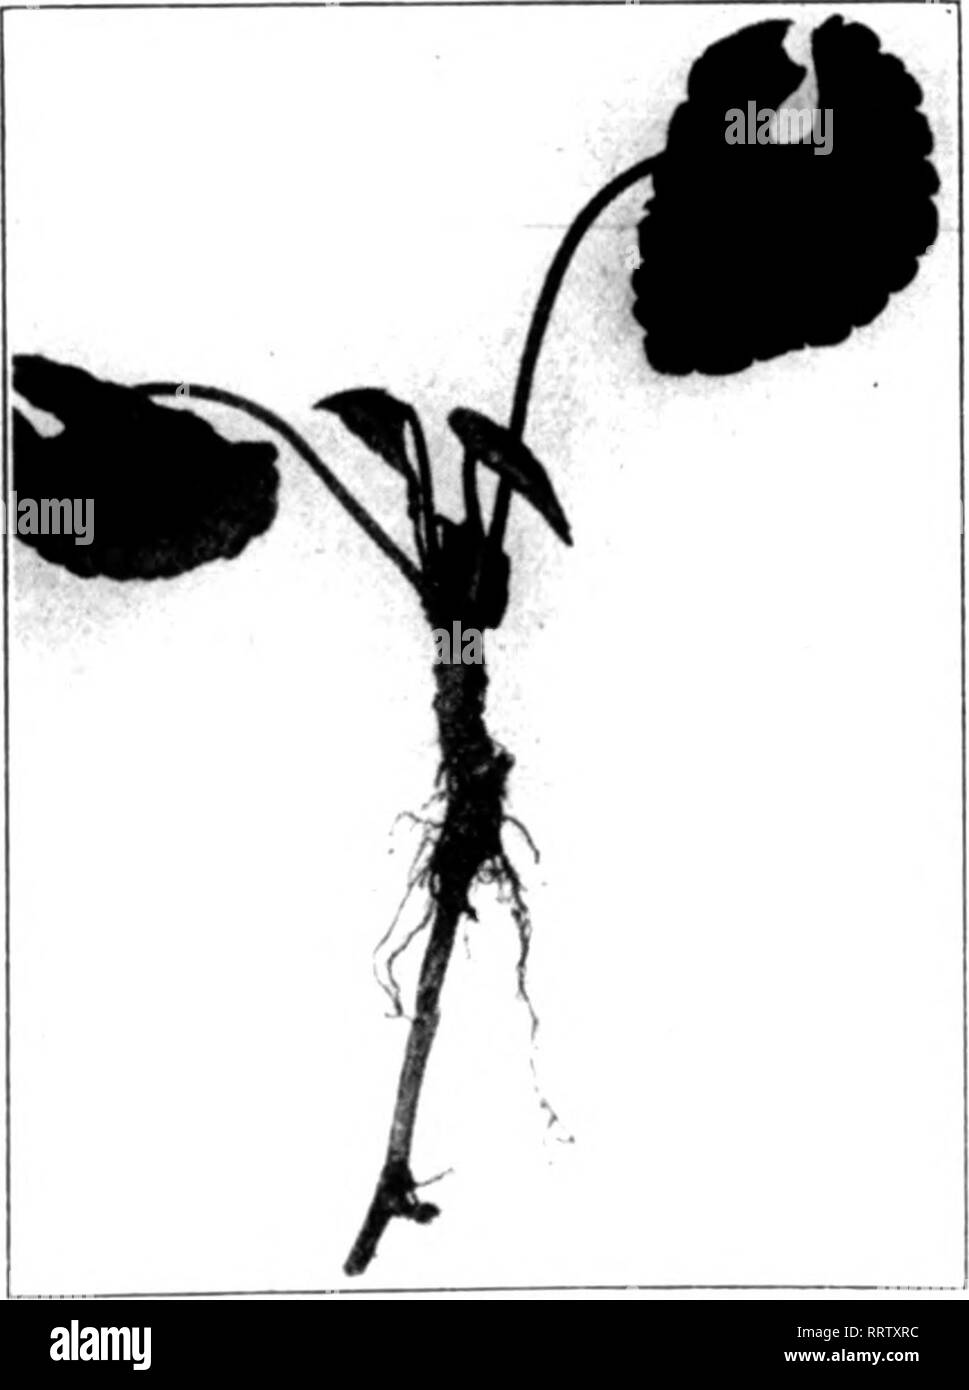 . Florists' review [microform]. Floriculture. DISEASES OF THE VIOLET^. [Extracts from a paper by Dr. Donald Red- (llck, of Ithaca, N. Y., read before the Massa- chusetts Horticultural Society. Continued from The Review of September 11.] Symptoms of Root Rot. Plants attacked by the thielavia dis- ease in its various stages are readily detected. A great many growers, how- ever, do not realize that the various symptoms which I shall now present to you are symptoms of one and the same disease. Indeed, one often has consid- erable difficulty in convincing growers that this is true. The most strikin - Stock Image